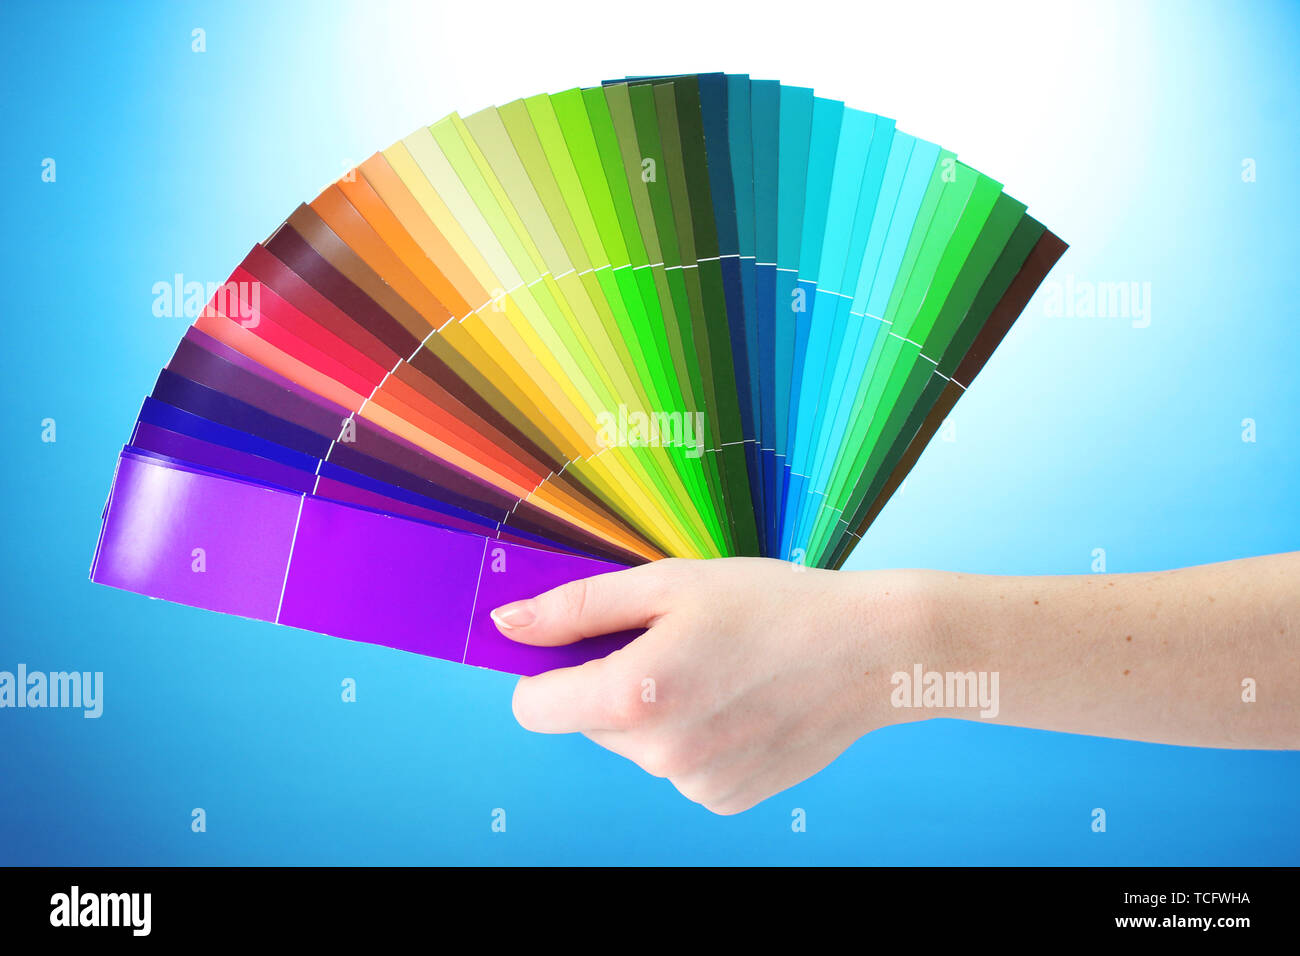 hand holding bright palette of colors on blue background - Stock Image